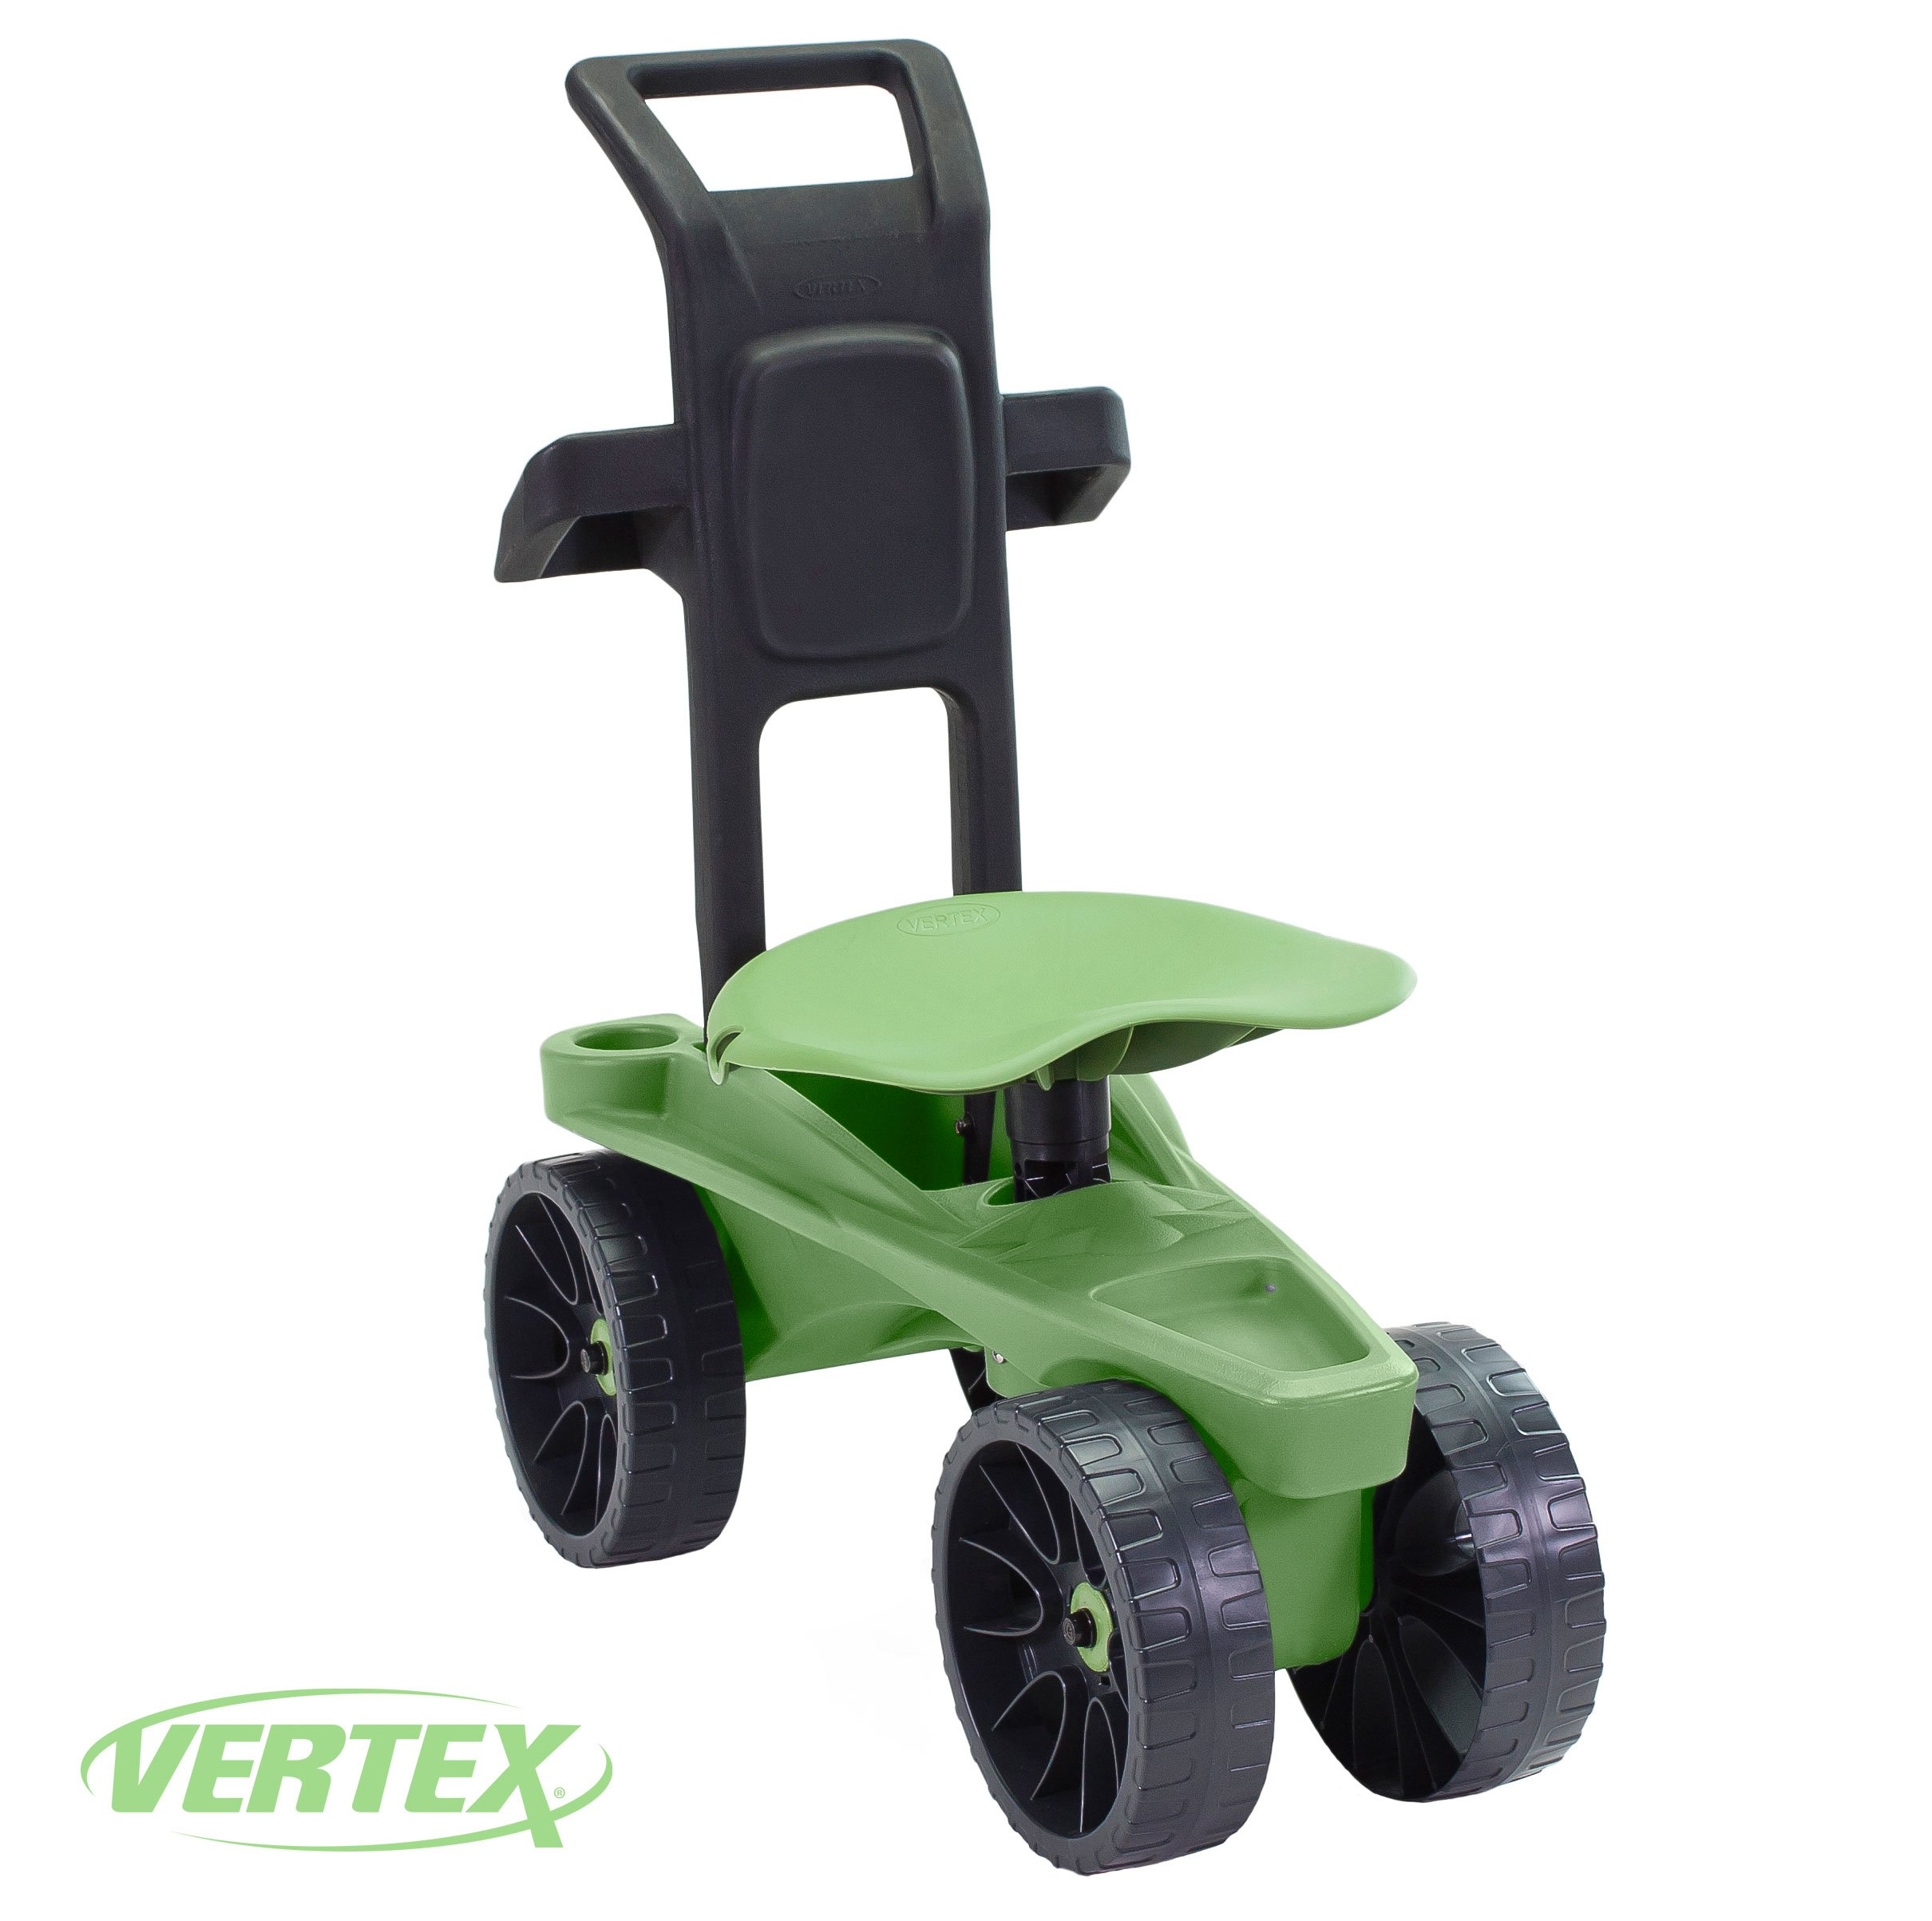 Easy Up Deluxe XTV Rolling Seat and Scoot Gardening Scooter - Adjustable Swivel Seat, Heavy Duty Wheels, and Ergonomic Design To Assist Standing, Sitting, and Bending Over Made in the USA